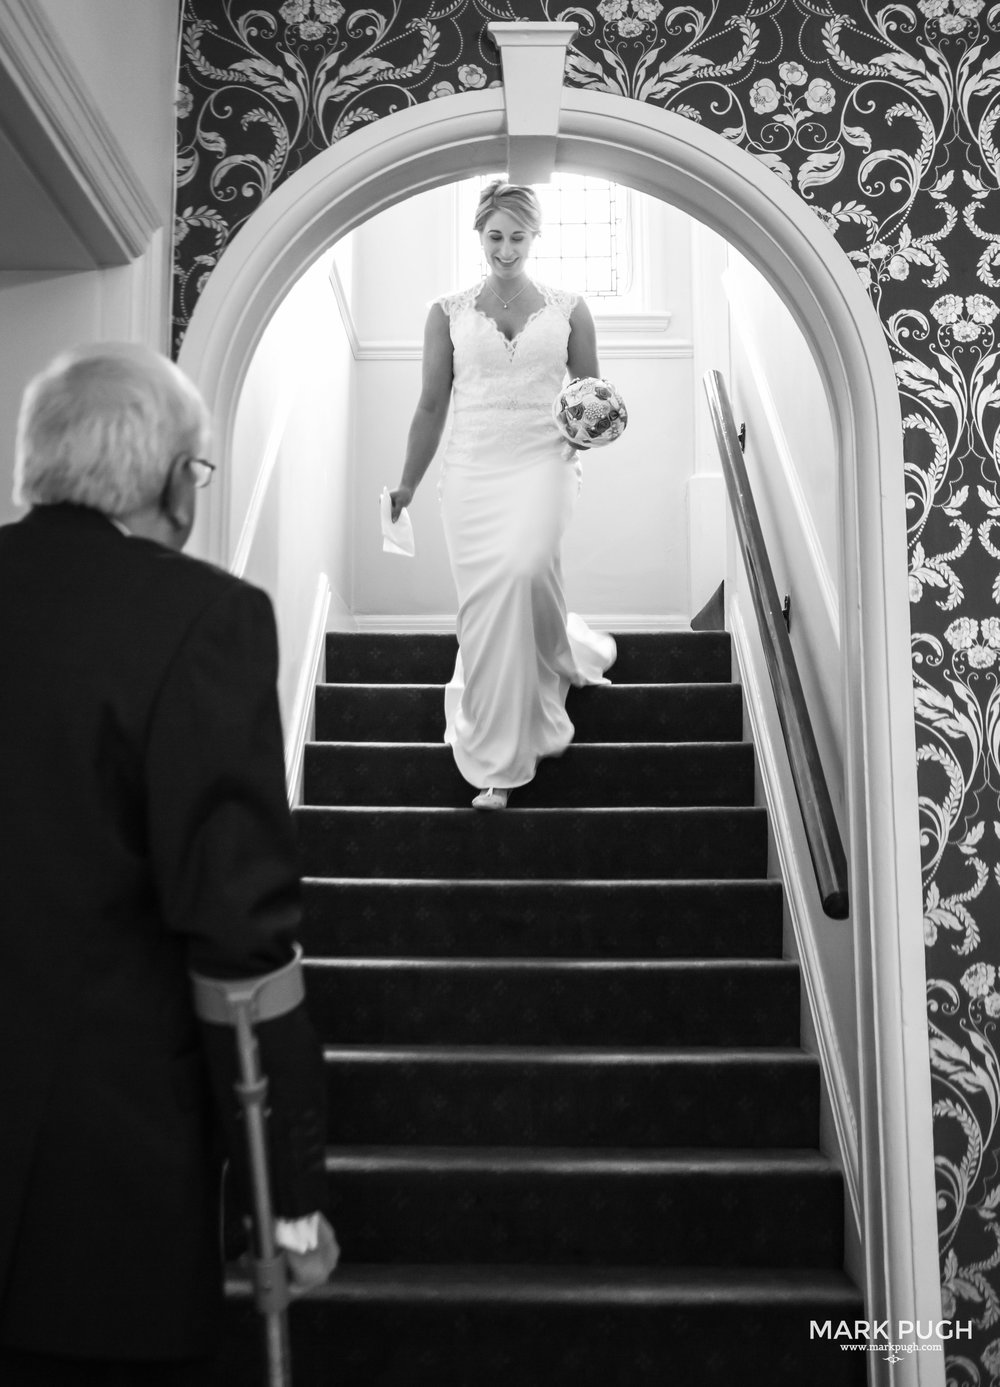 022 - Carrie and Ben - fineART wedding photography at the Kelham House Country Manor Hotel NG23 5QP by www.markpugh.com Mark Pugh of www.mpmedia.co.uk_.JPG